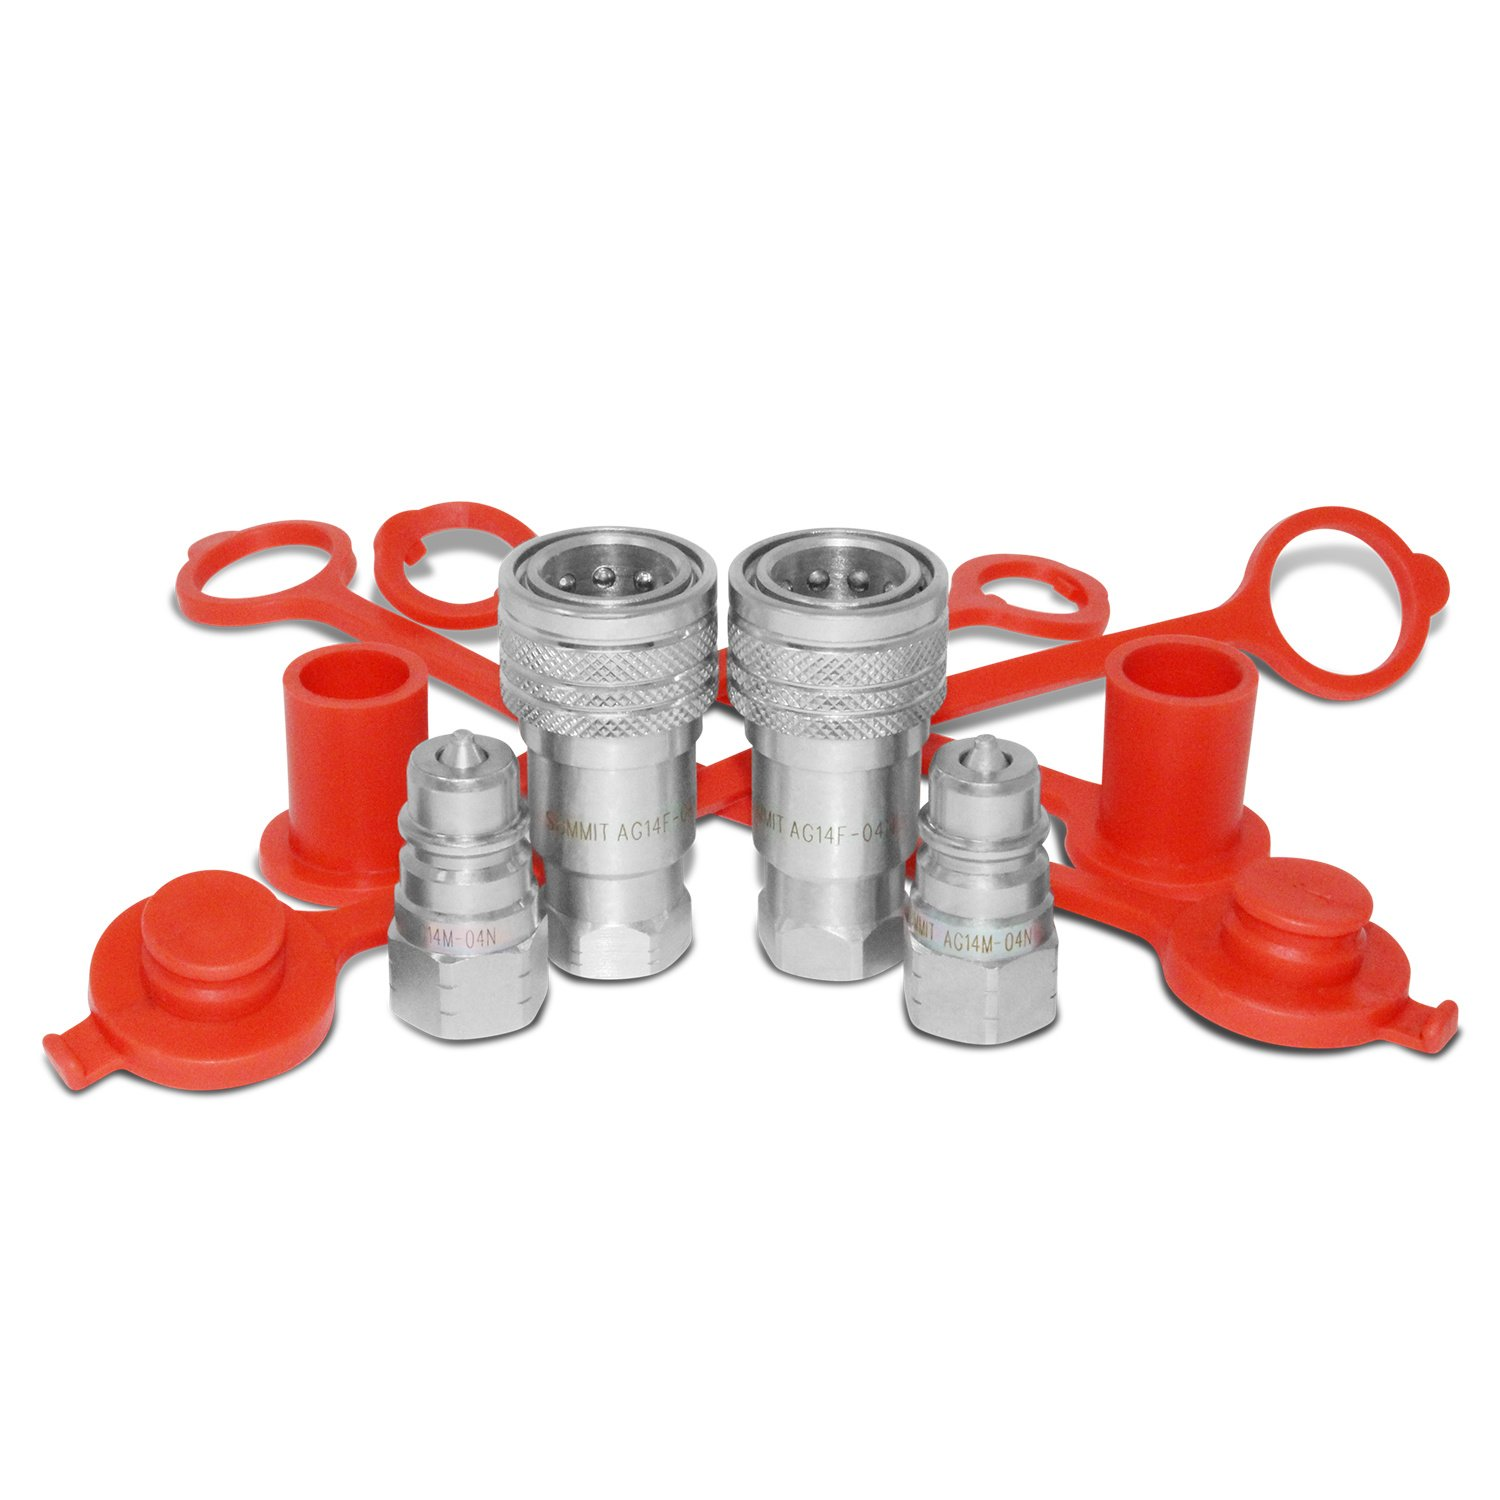 1/4'' Ag ISO 5675 Hydraulic Quick Connect Pioneer Style Couplers, 1/4'' NPT Thread, 2 Sets